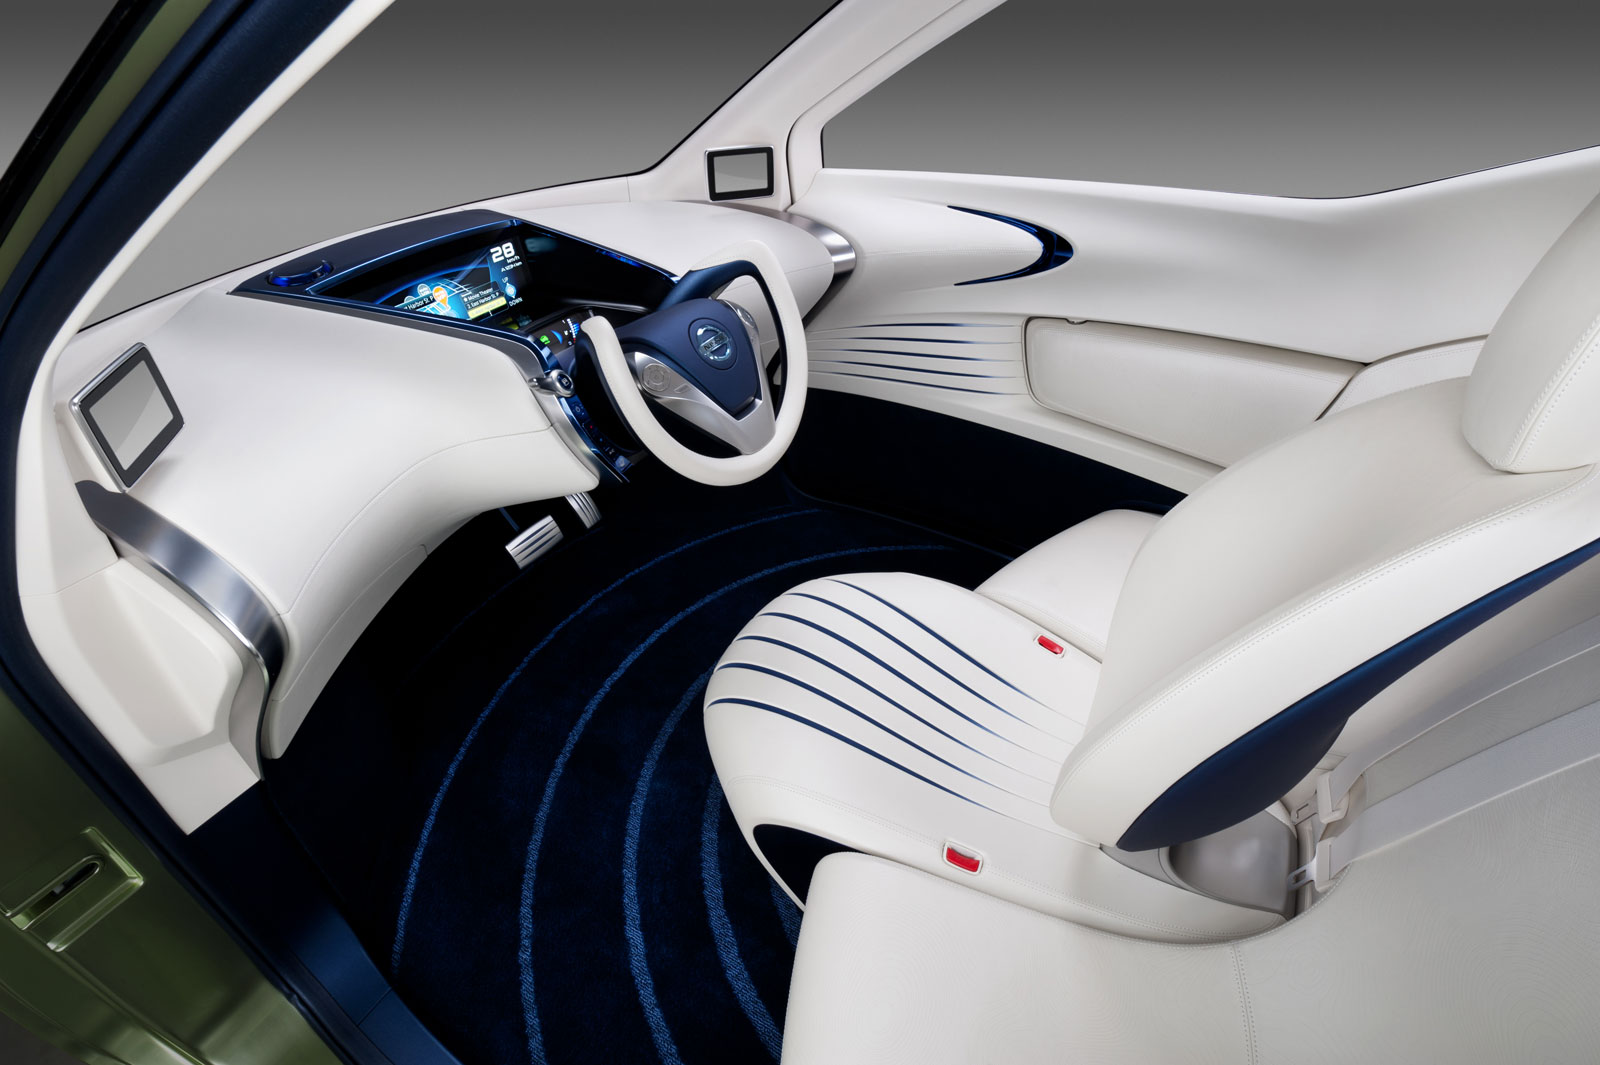 Nissan pivo 3 concept car body design for Interior design concept package